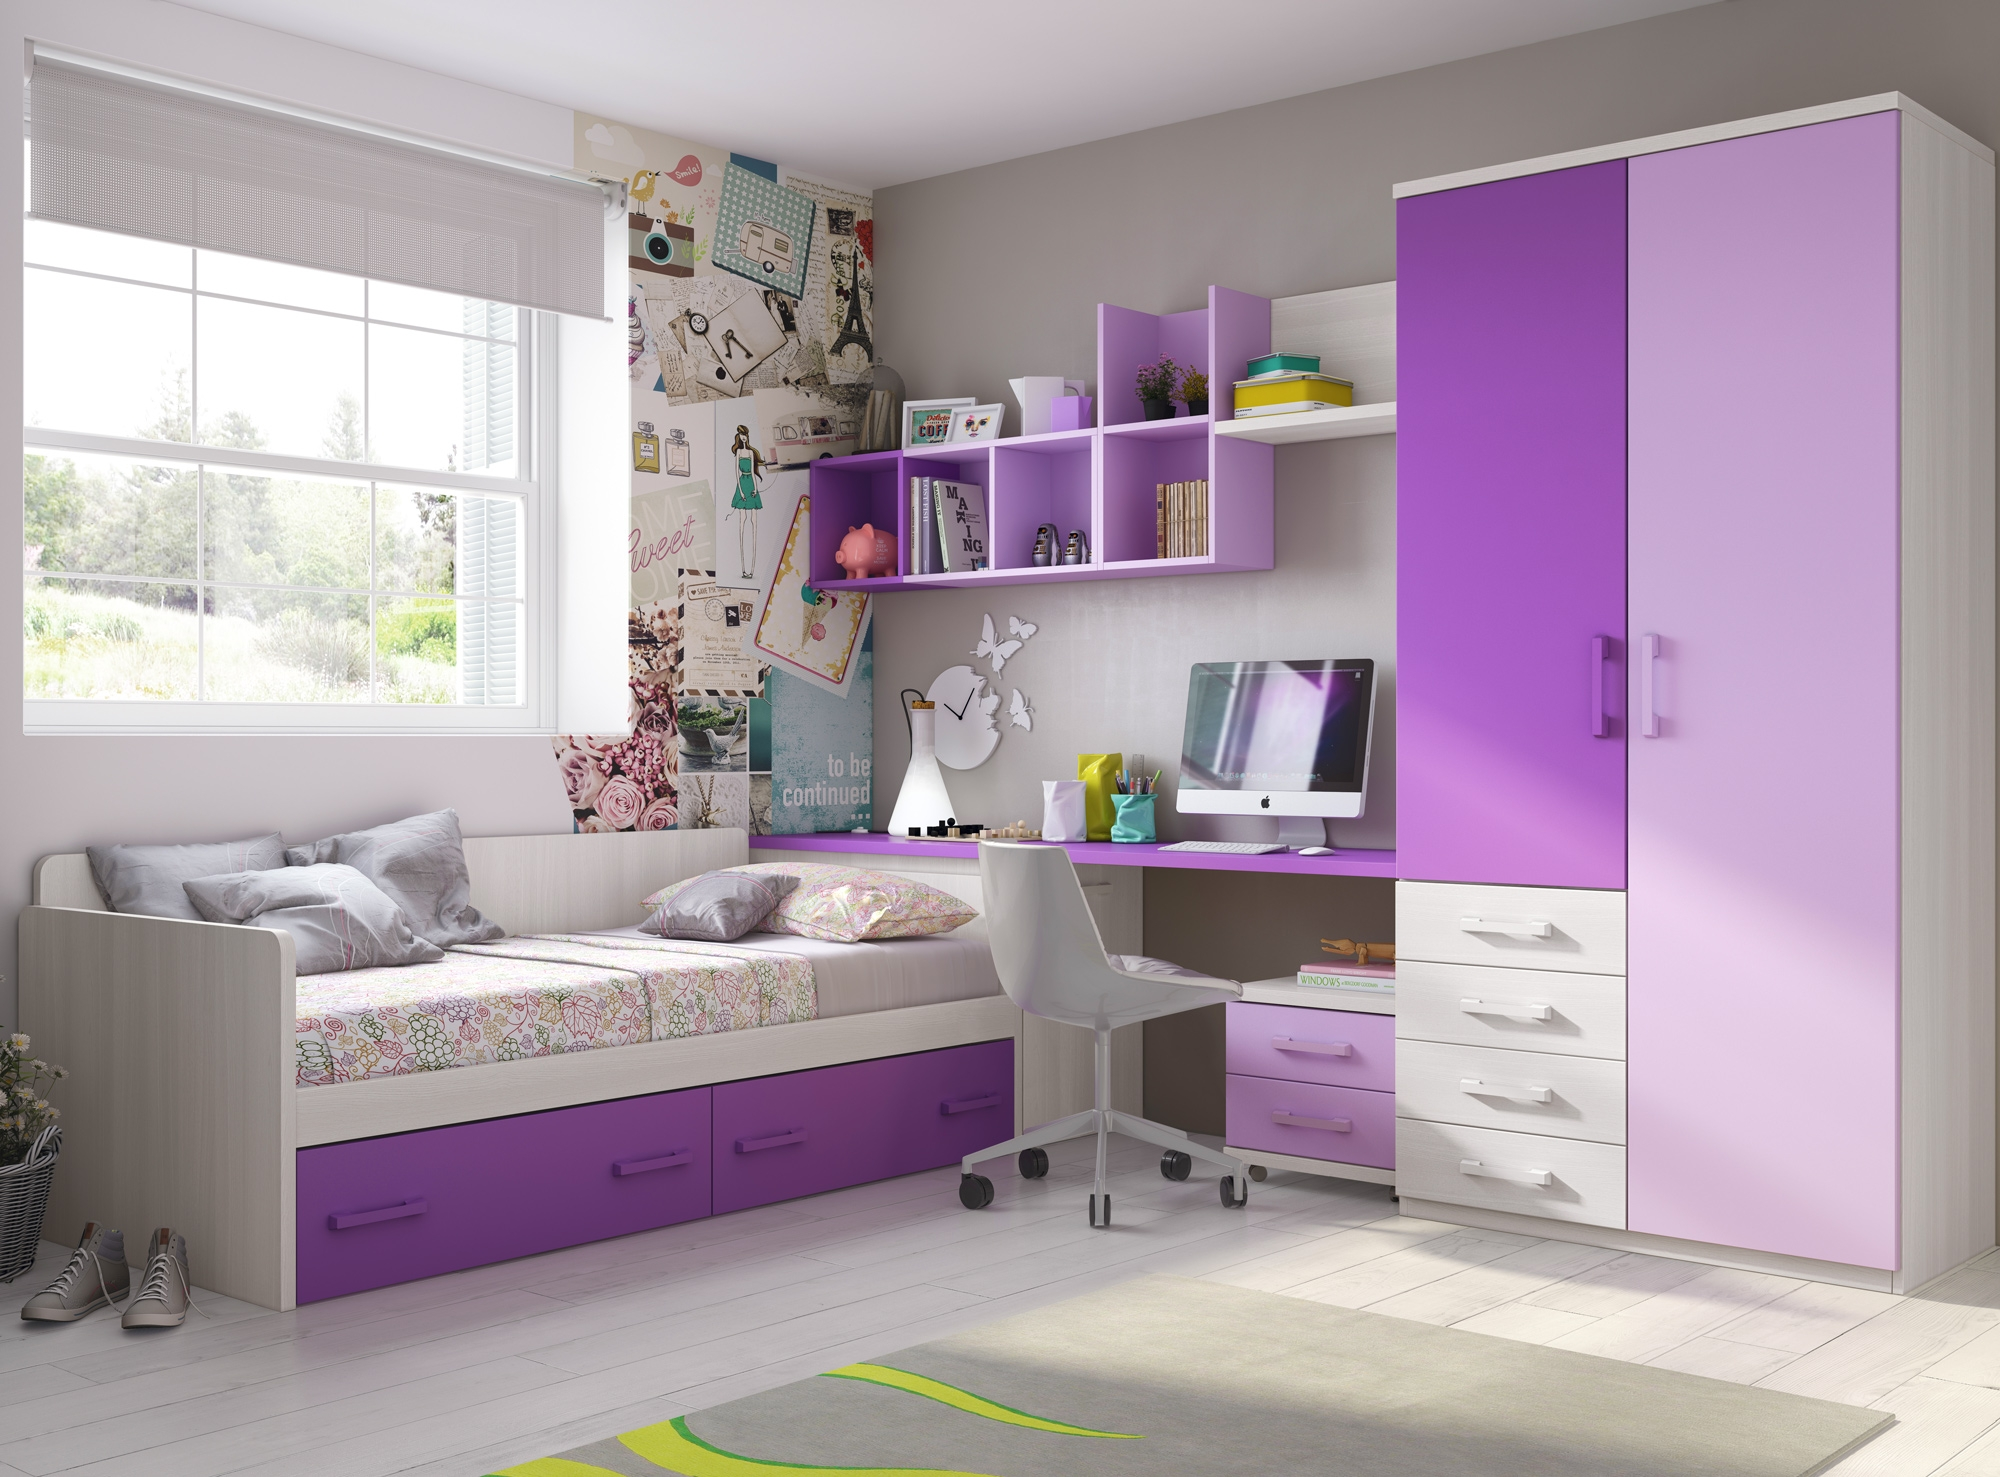 Awesome chambre ado fille moderne violet gallery matkin for Chambre ado fille